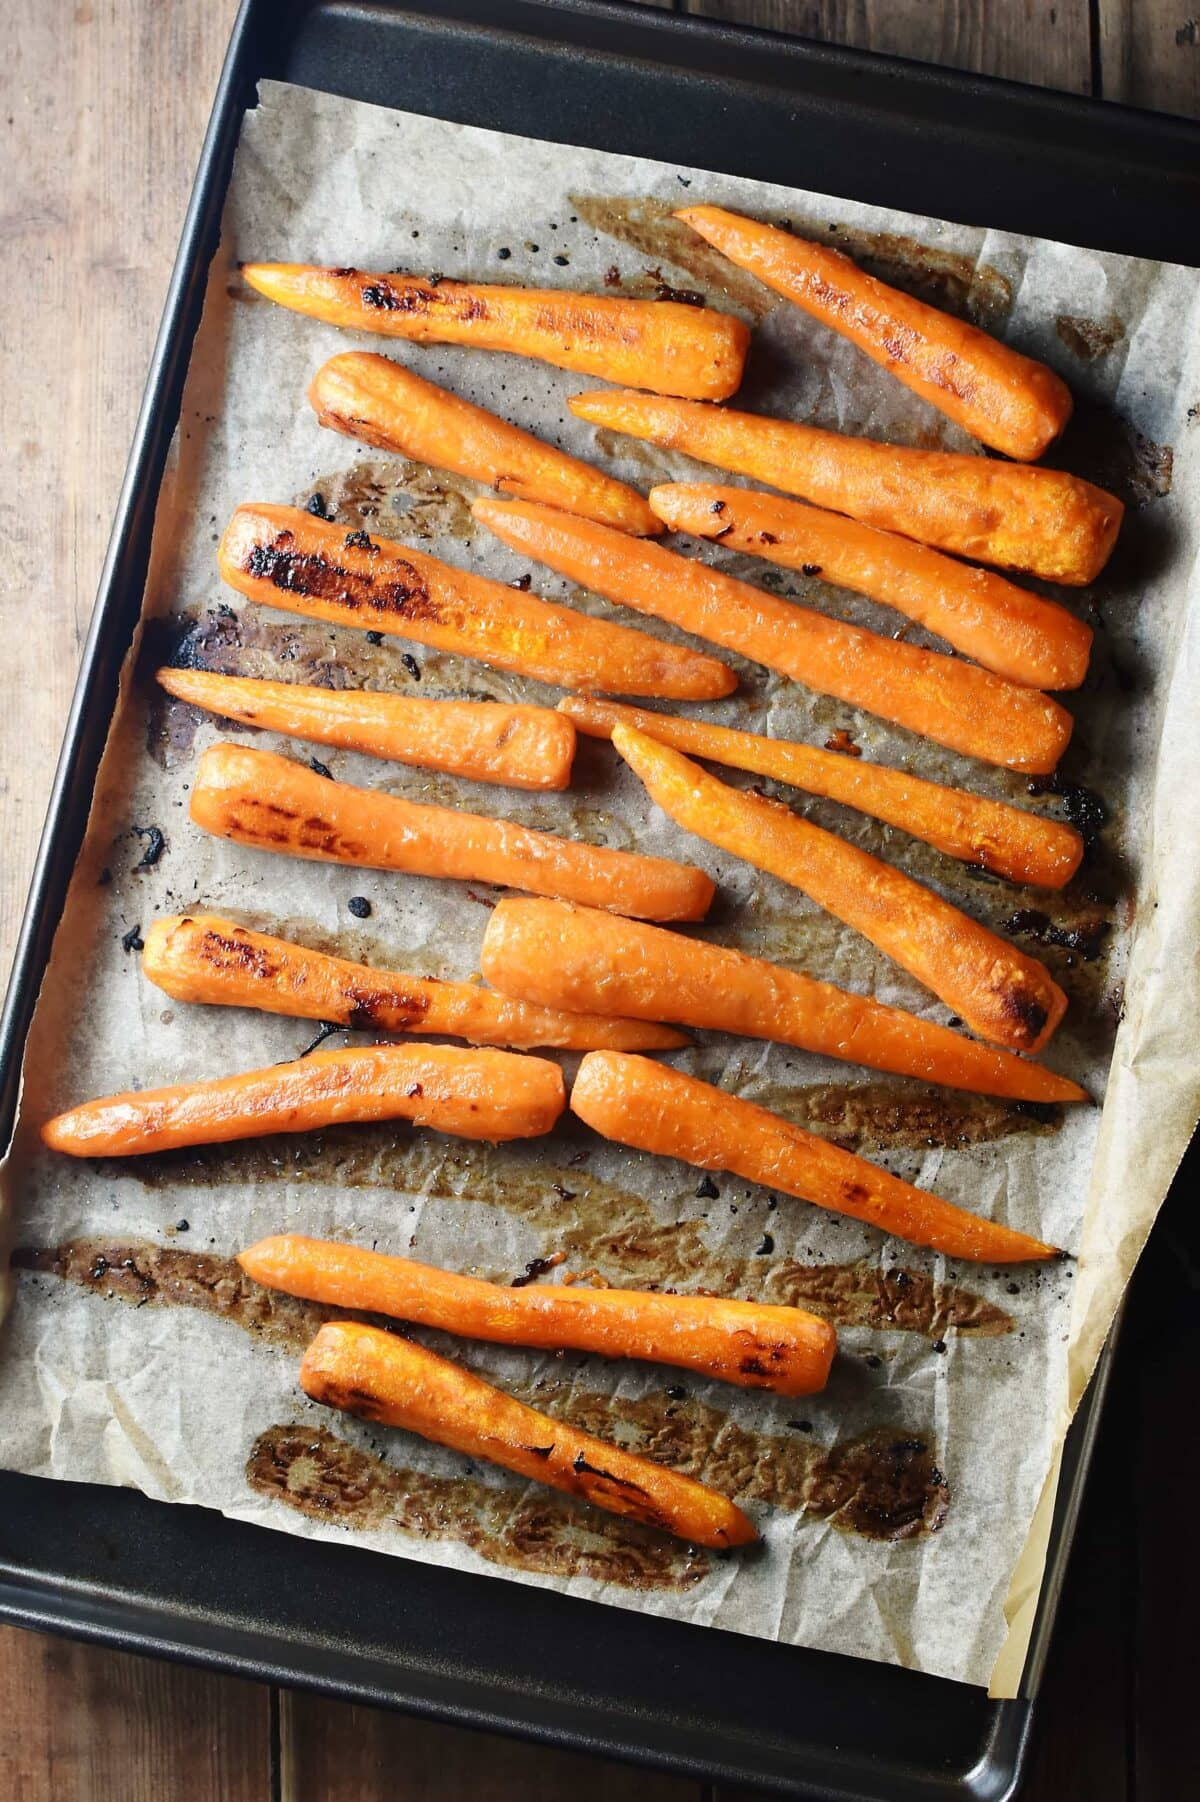 Roasted glazed carrots on top of baking paper.